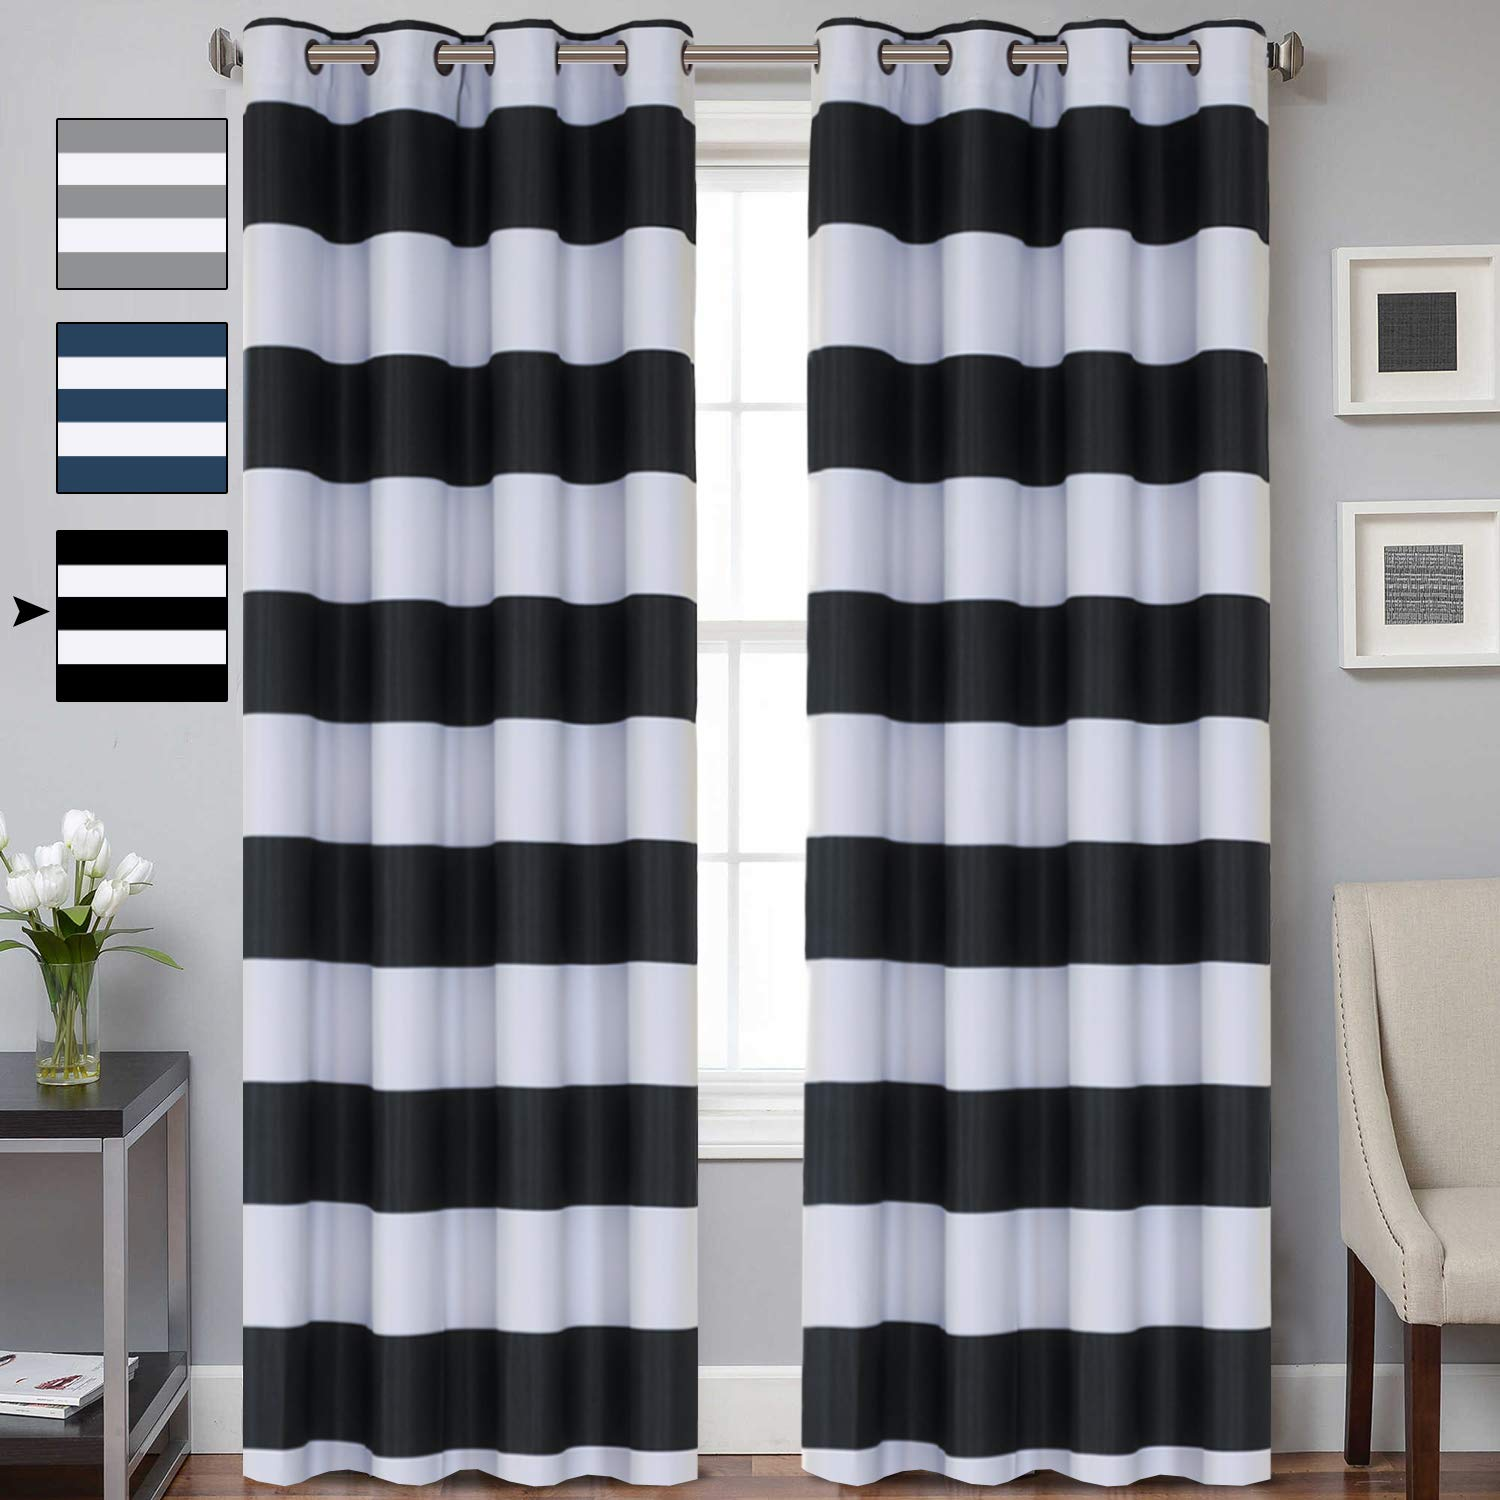 Turquoize Striped Blackout Curtains Elegant Grommet Thermal Insulated Black  and White Curtains Drapes for Living Room/Bedroom 52W x 96L, 2 Panels